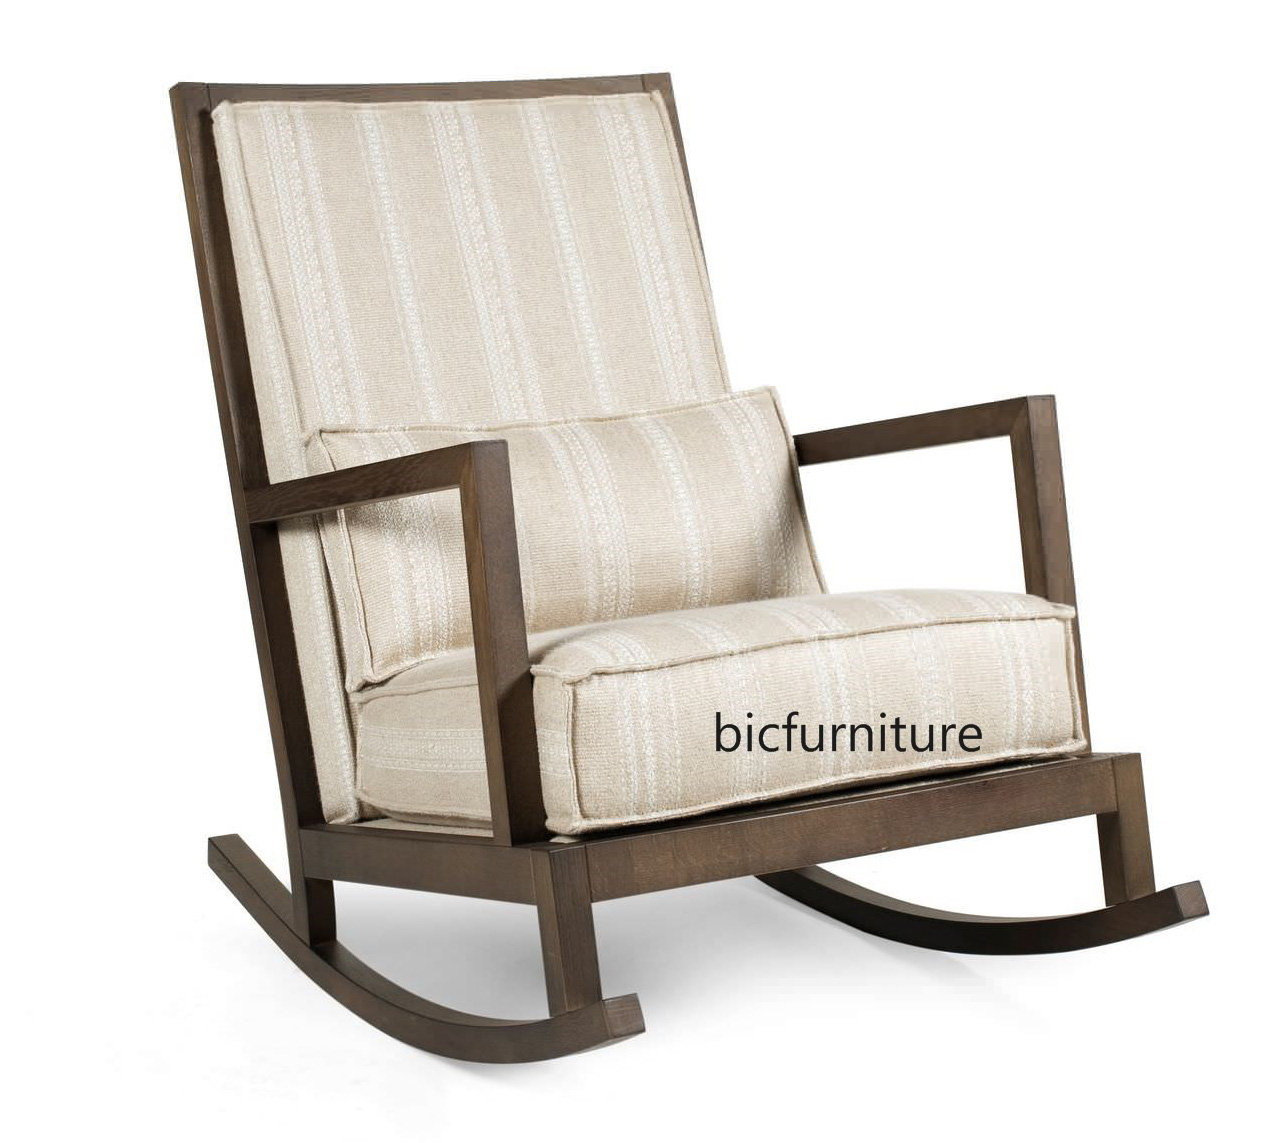 fy rocking chairs Quotes